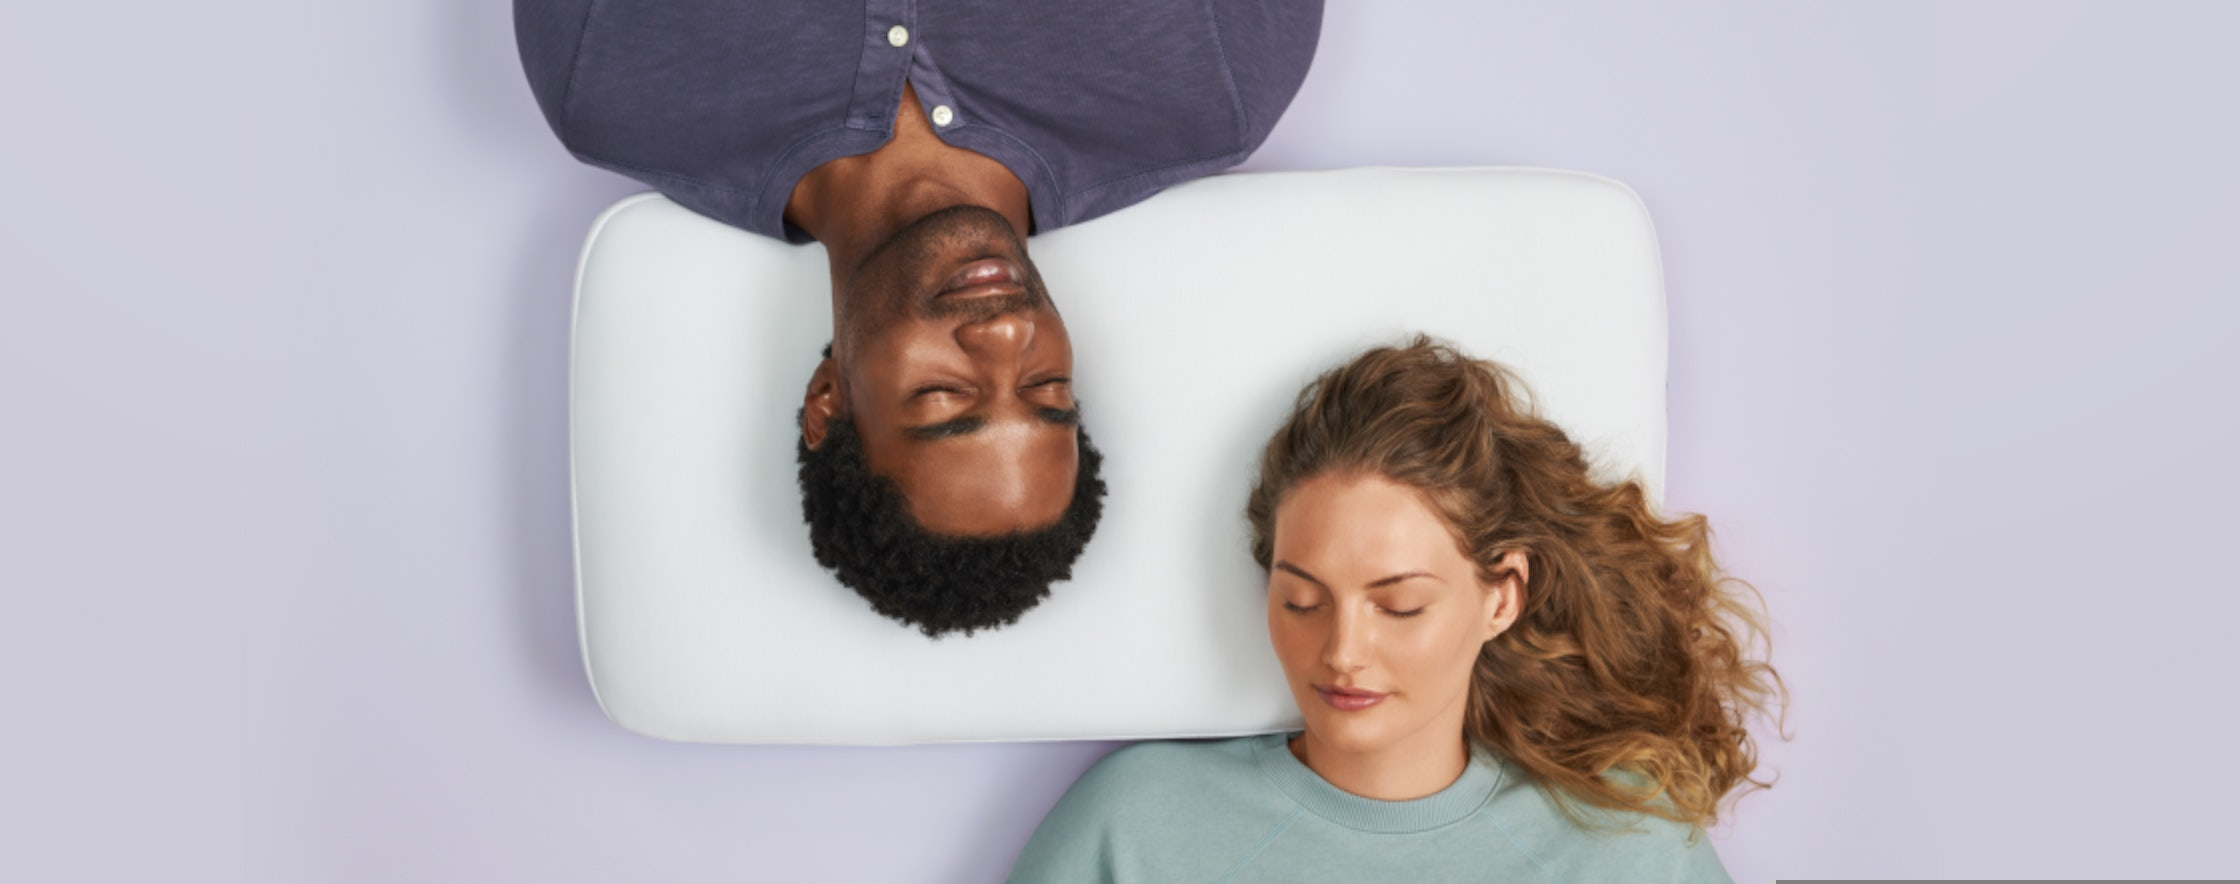 Foam Pillow for contouring support